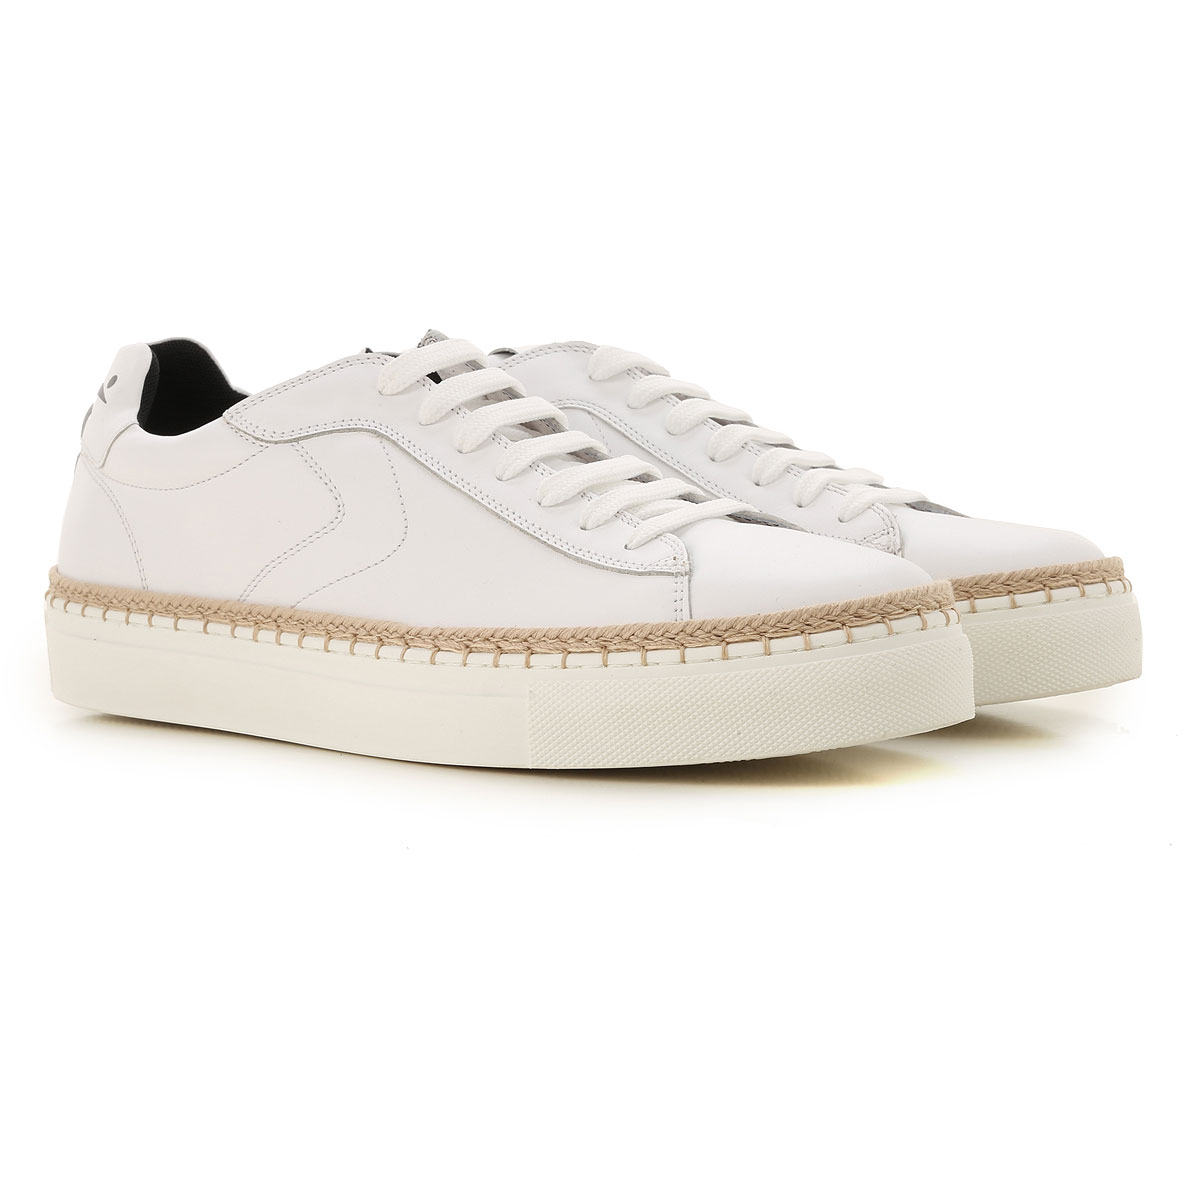 Voile Blanche Sneakers for Men On Sale, White, Leather, 2019, 11.5 7.5